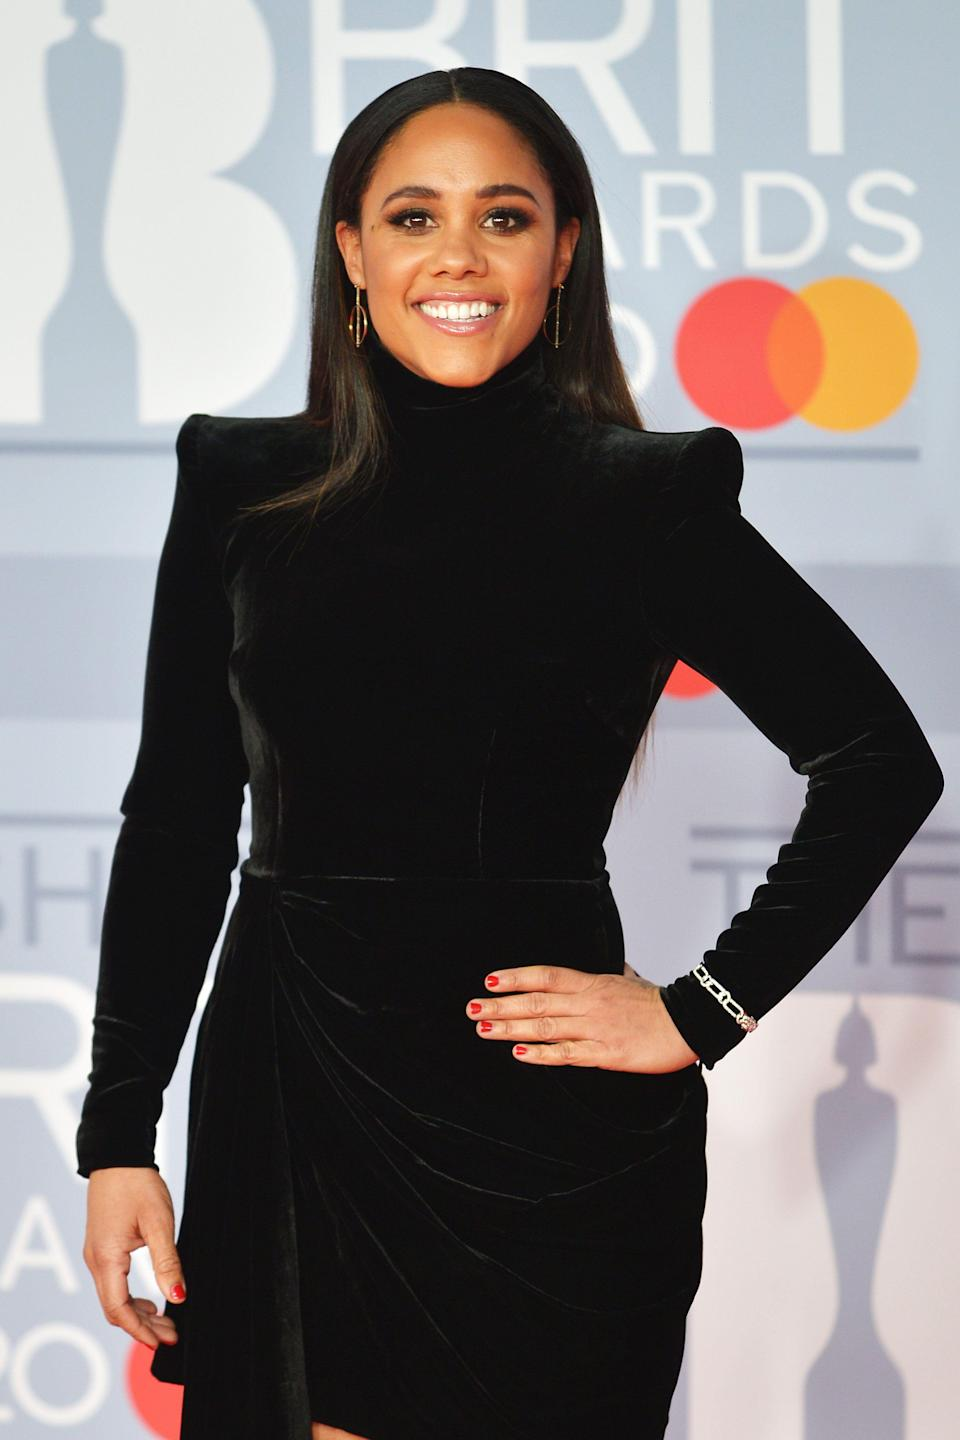 Alex Scott Says She Is Proud Of Her Accent As She Responds To Lord Digby  Jones' Criticism Of Her Olympic Coverage